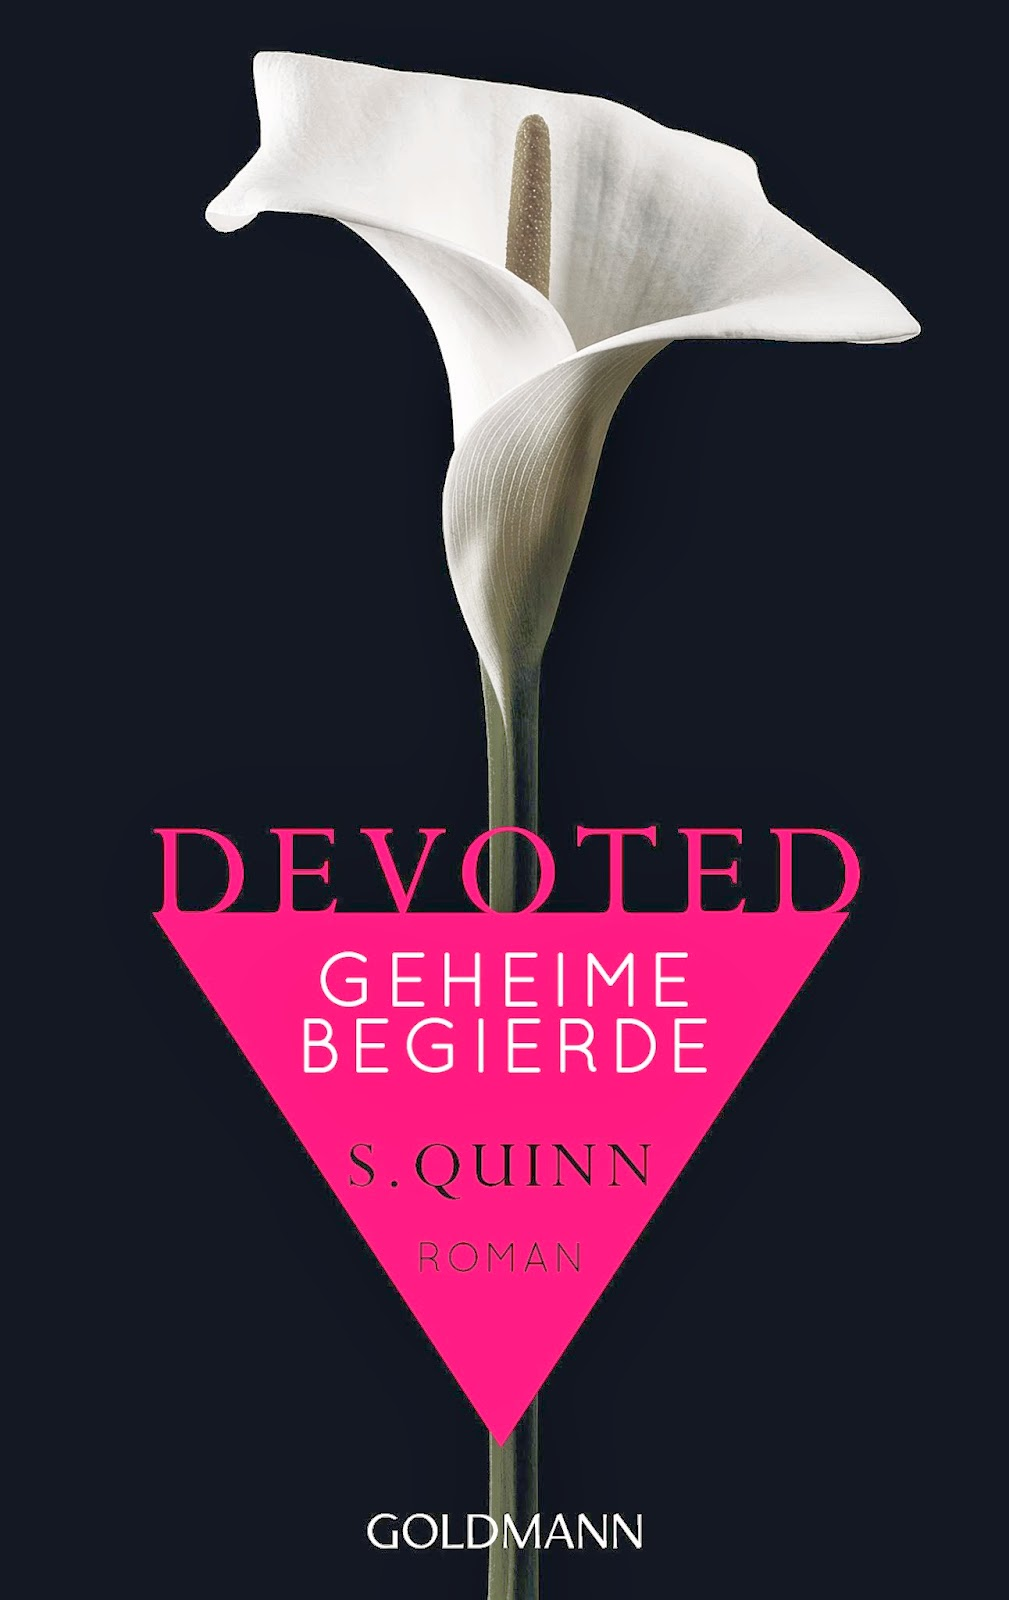 http://sharonbakerliest.blogspot.de/2013/10/rezension-s-quinn-devoted-geheime.html